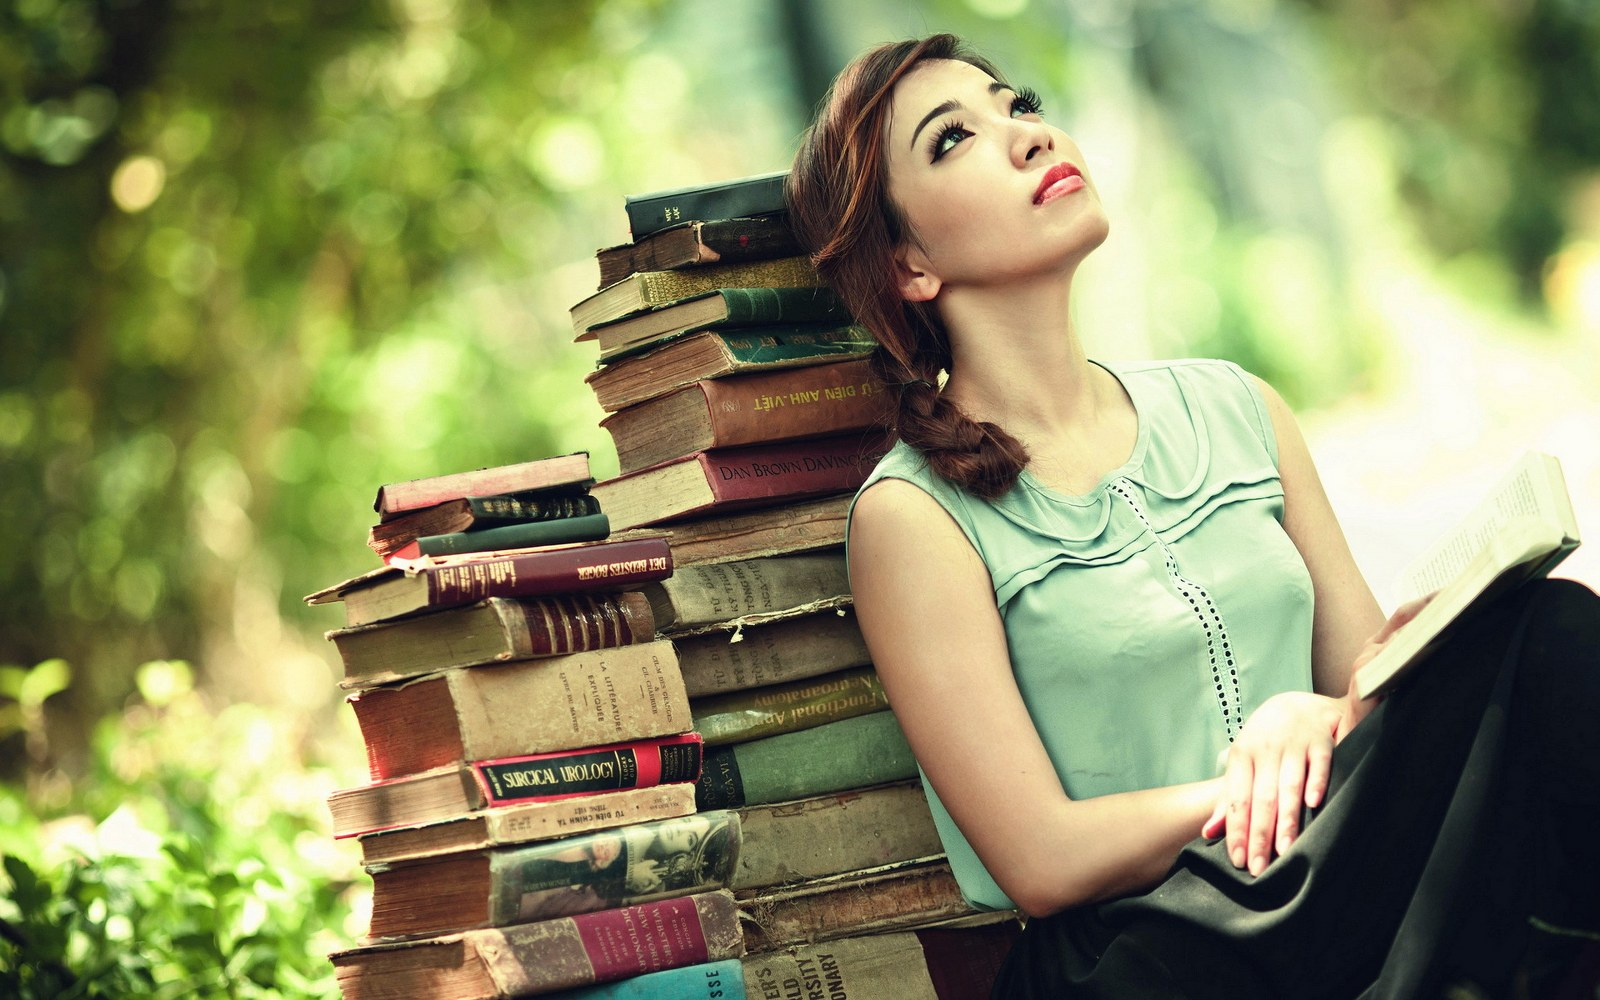 Girl-With-A-Book-Photo-Shot